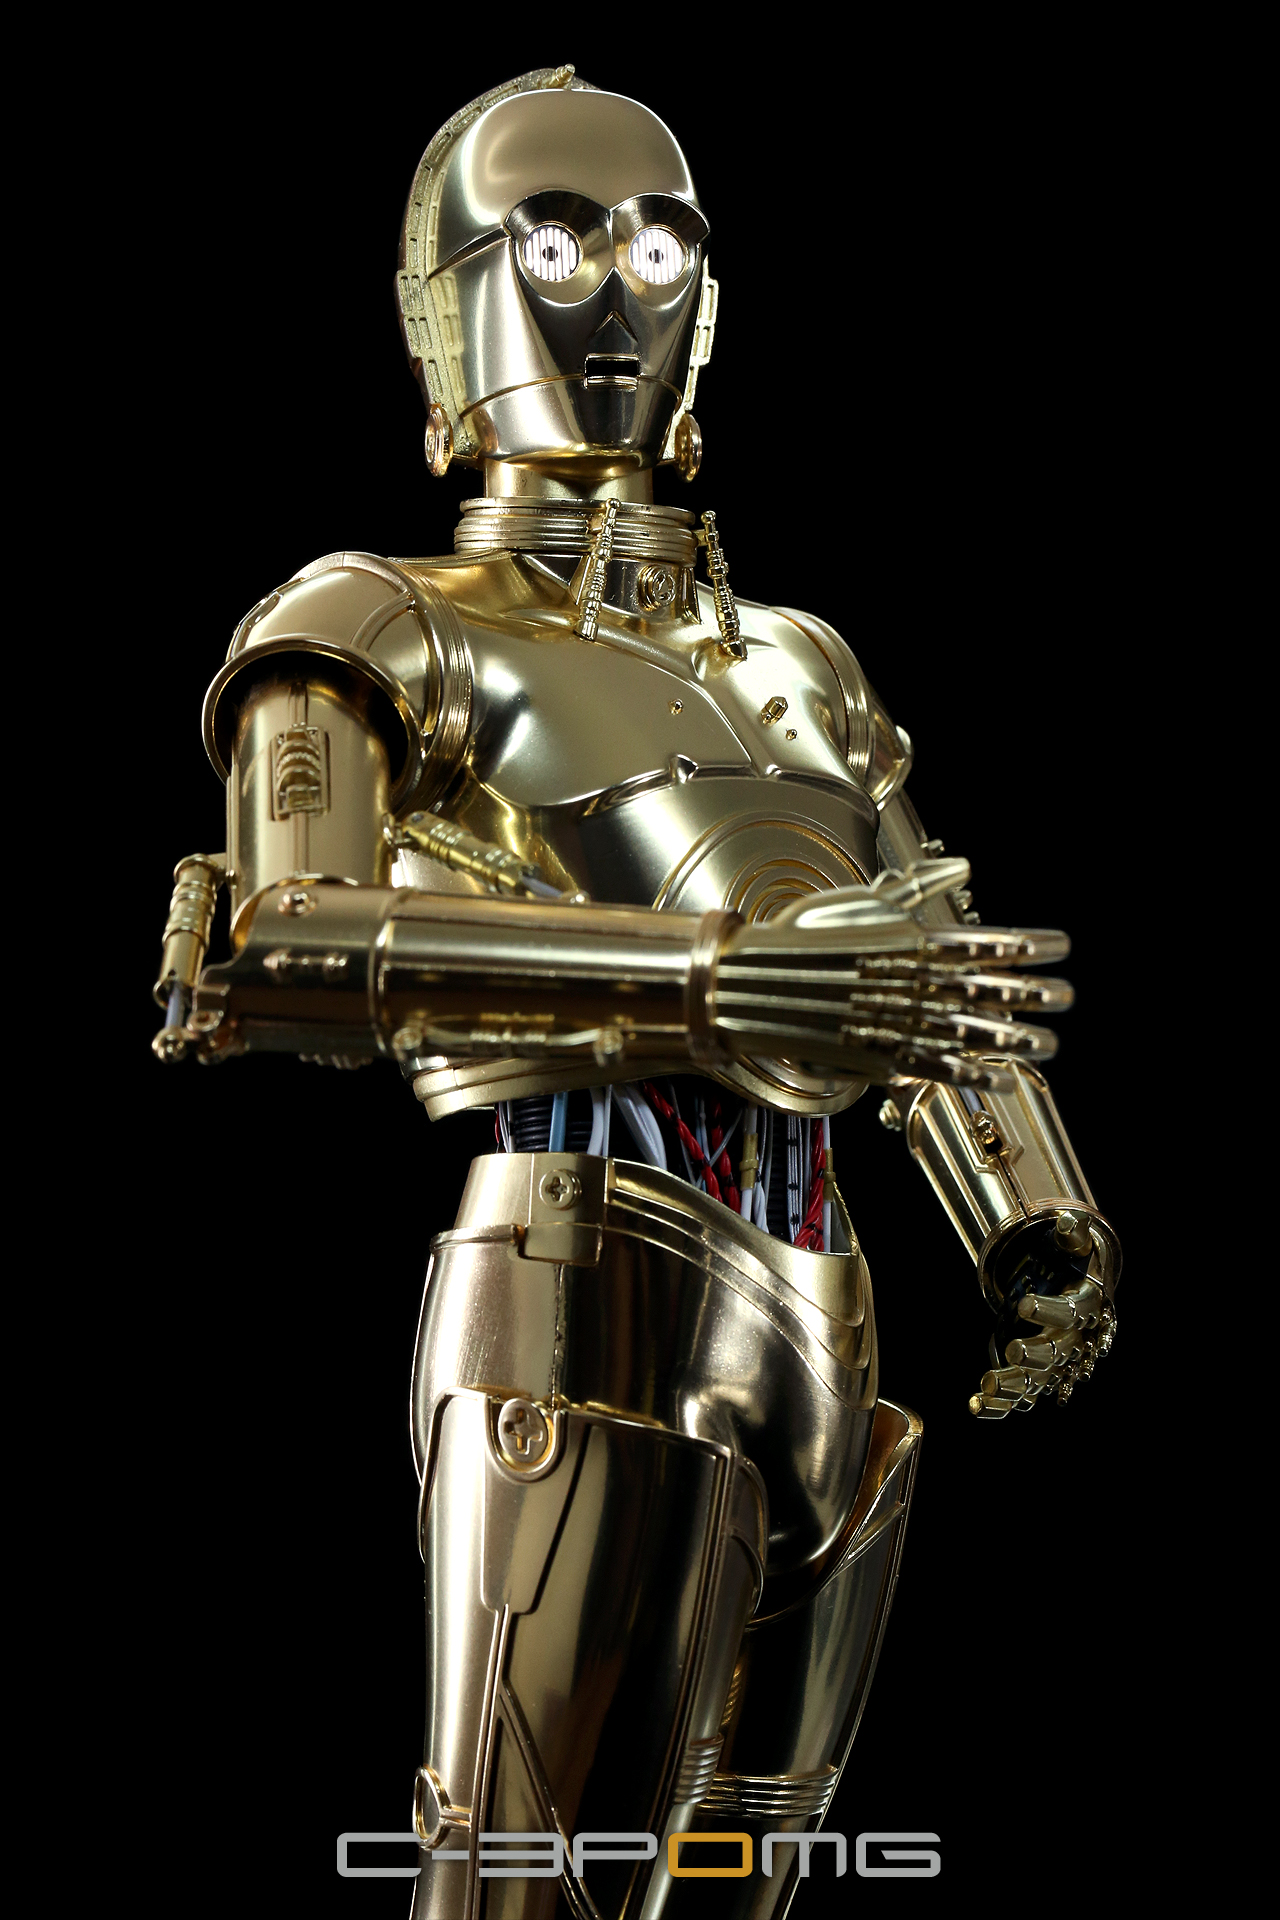 [Bandai] Star Wars: C-3PO - Perfect Model 1/6 scale - LANÇADO!!! - Página 2 C-3PO1018_zpsf32bbb8f